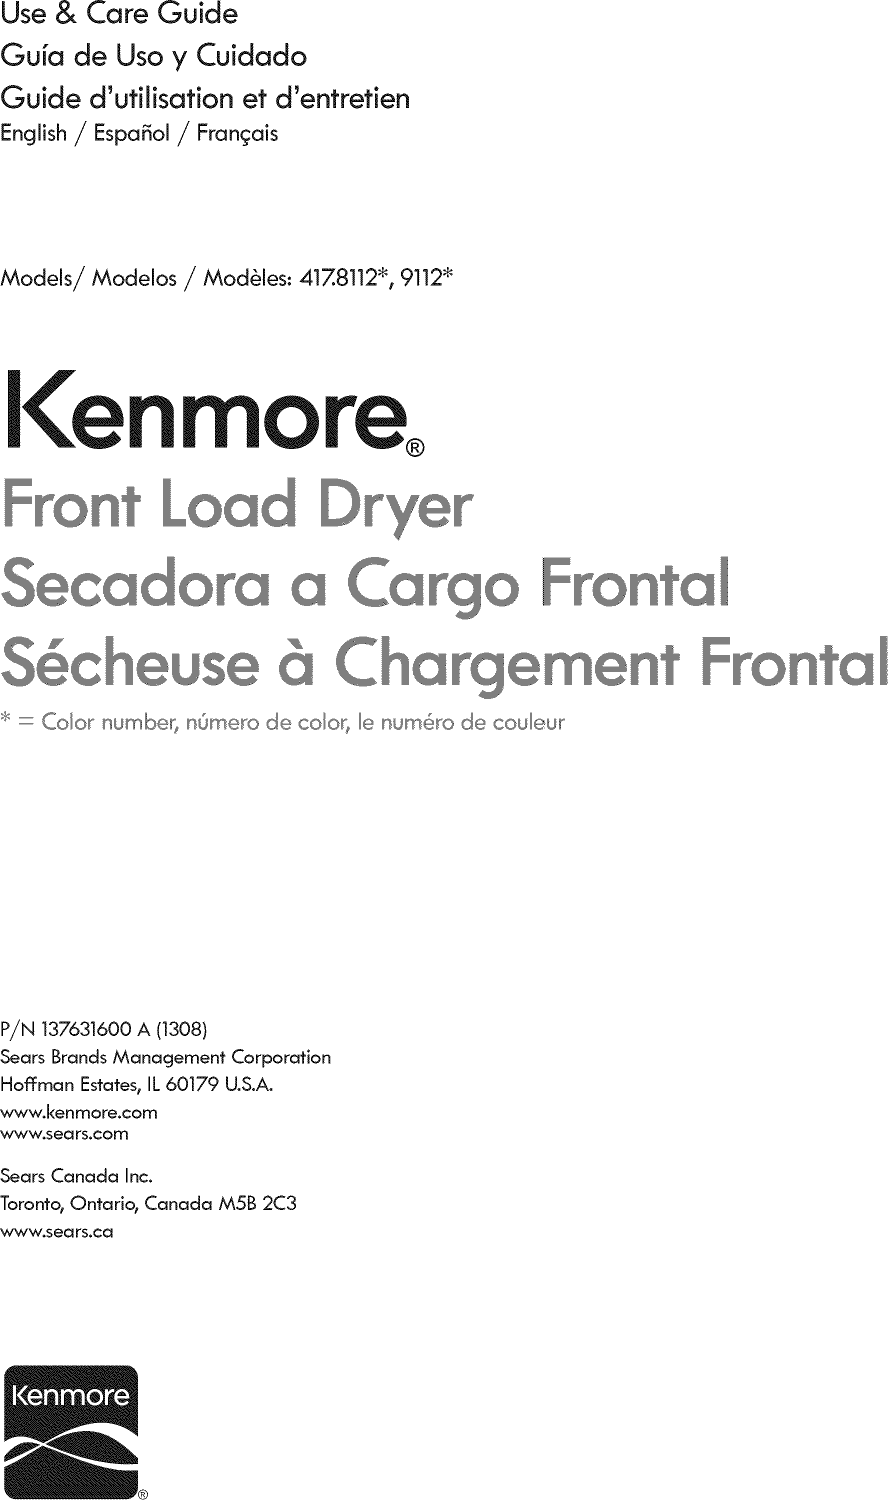 Looking For Kenmore Model 41781122310 Dryer Repair Manual Guide